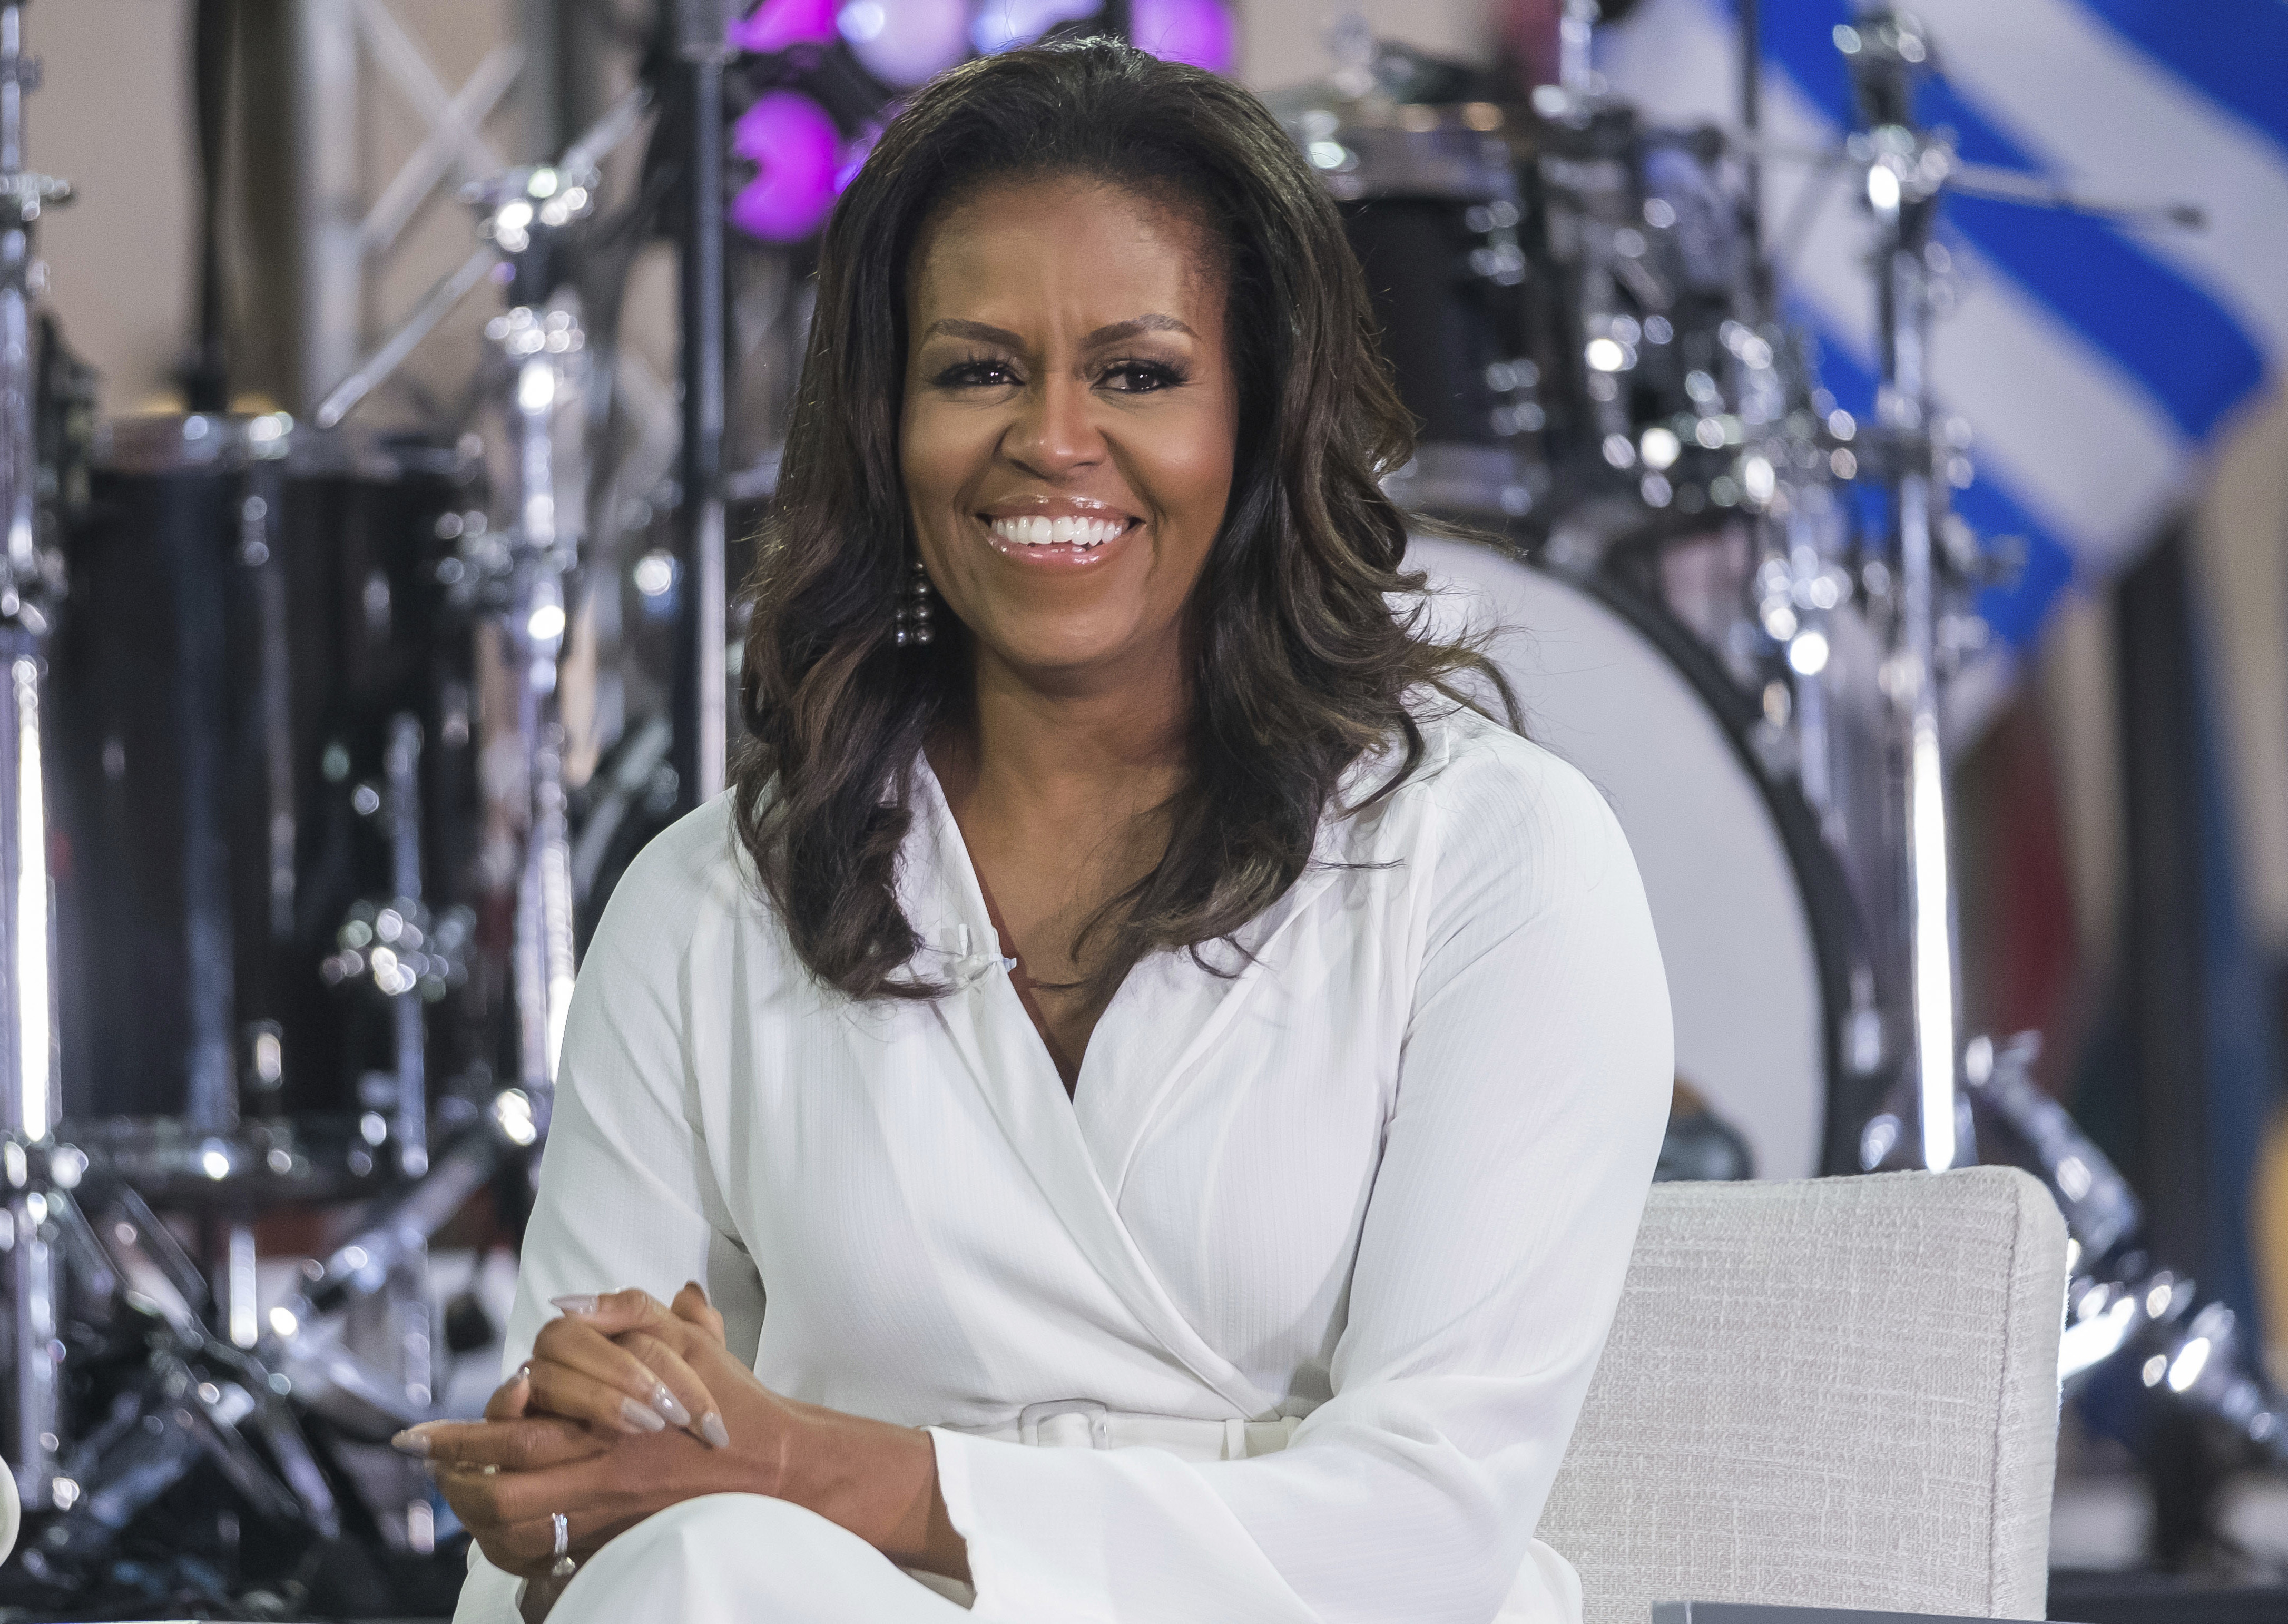 More celebs join Michelle Obama's voter outreach drive